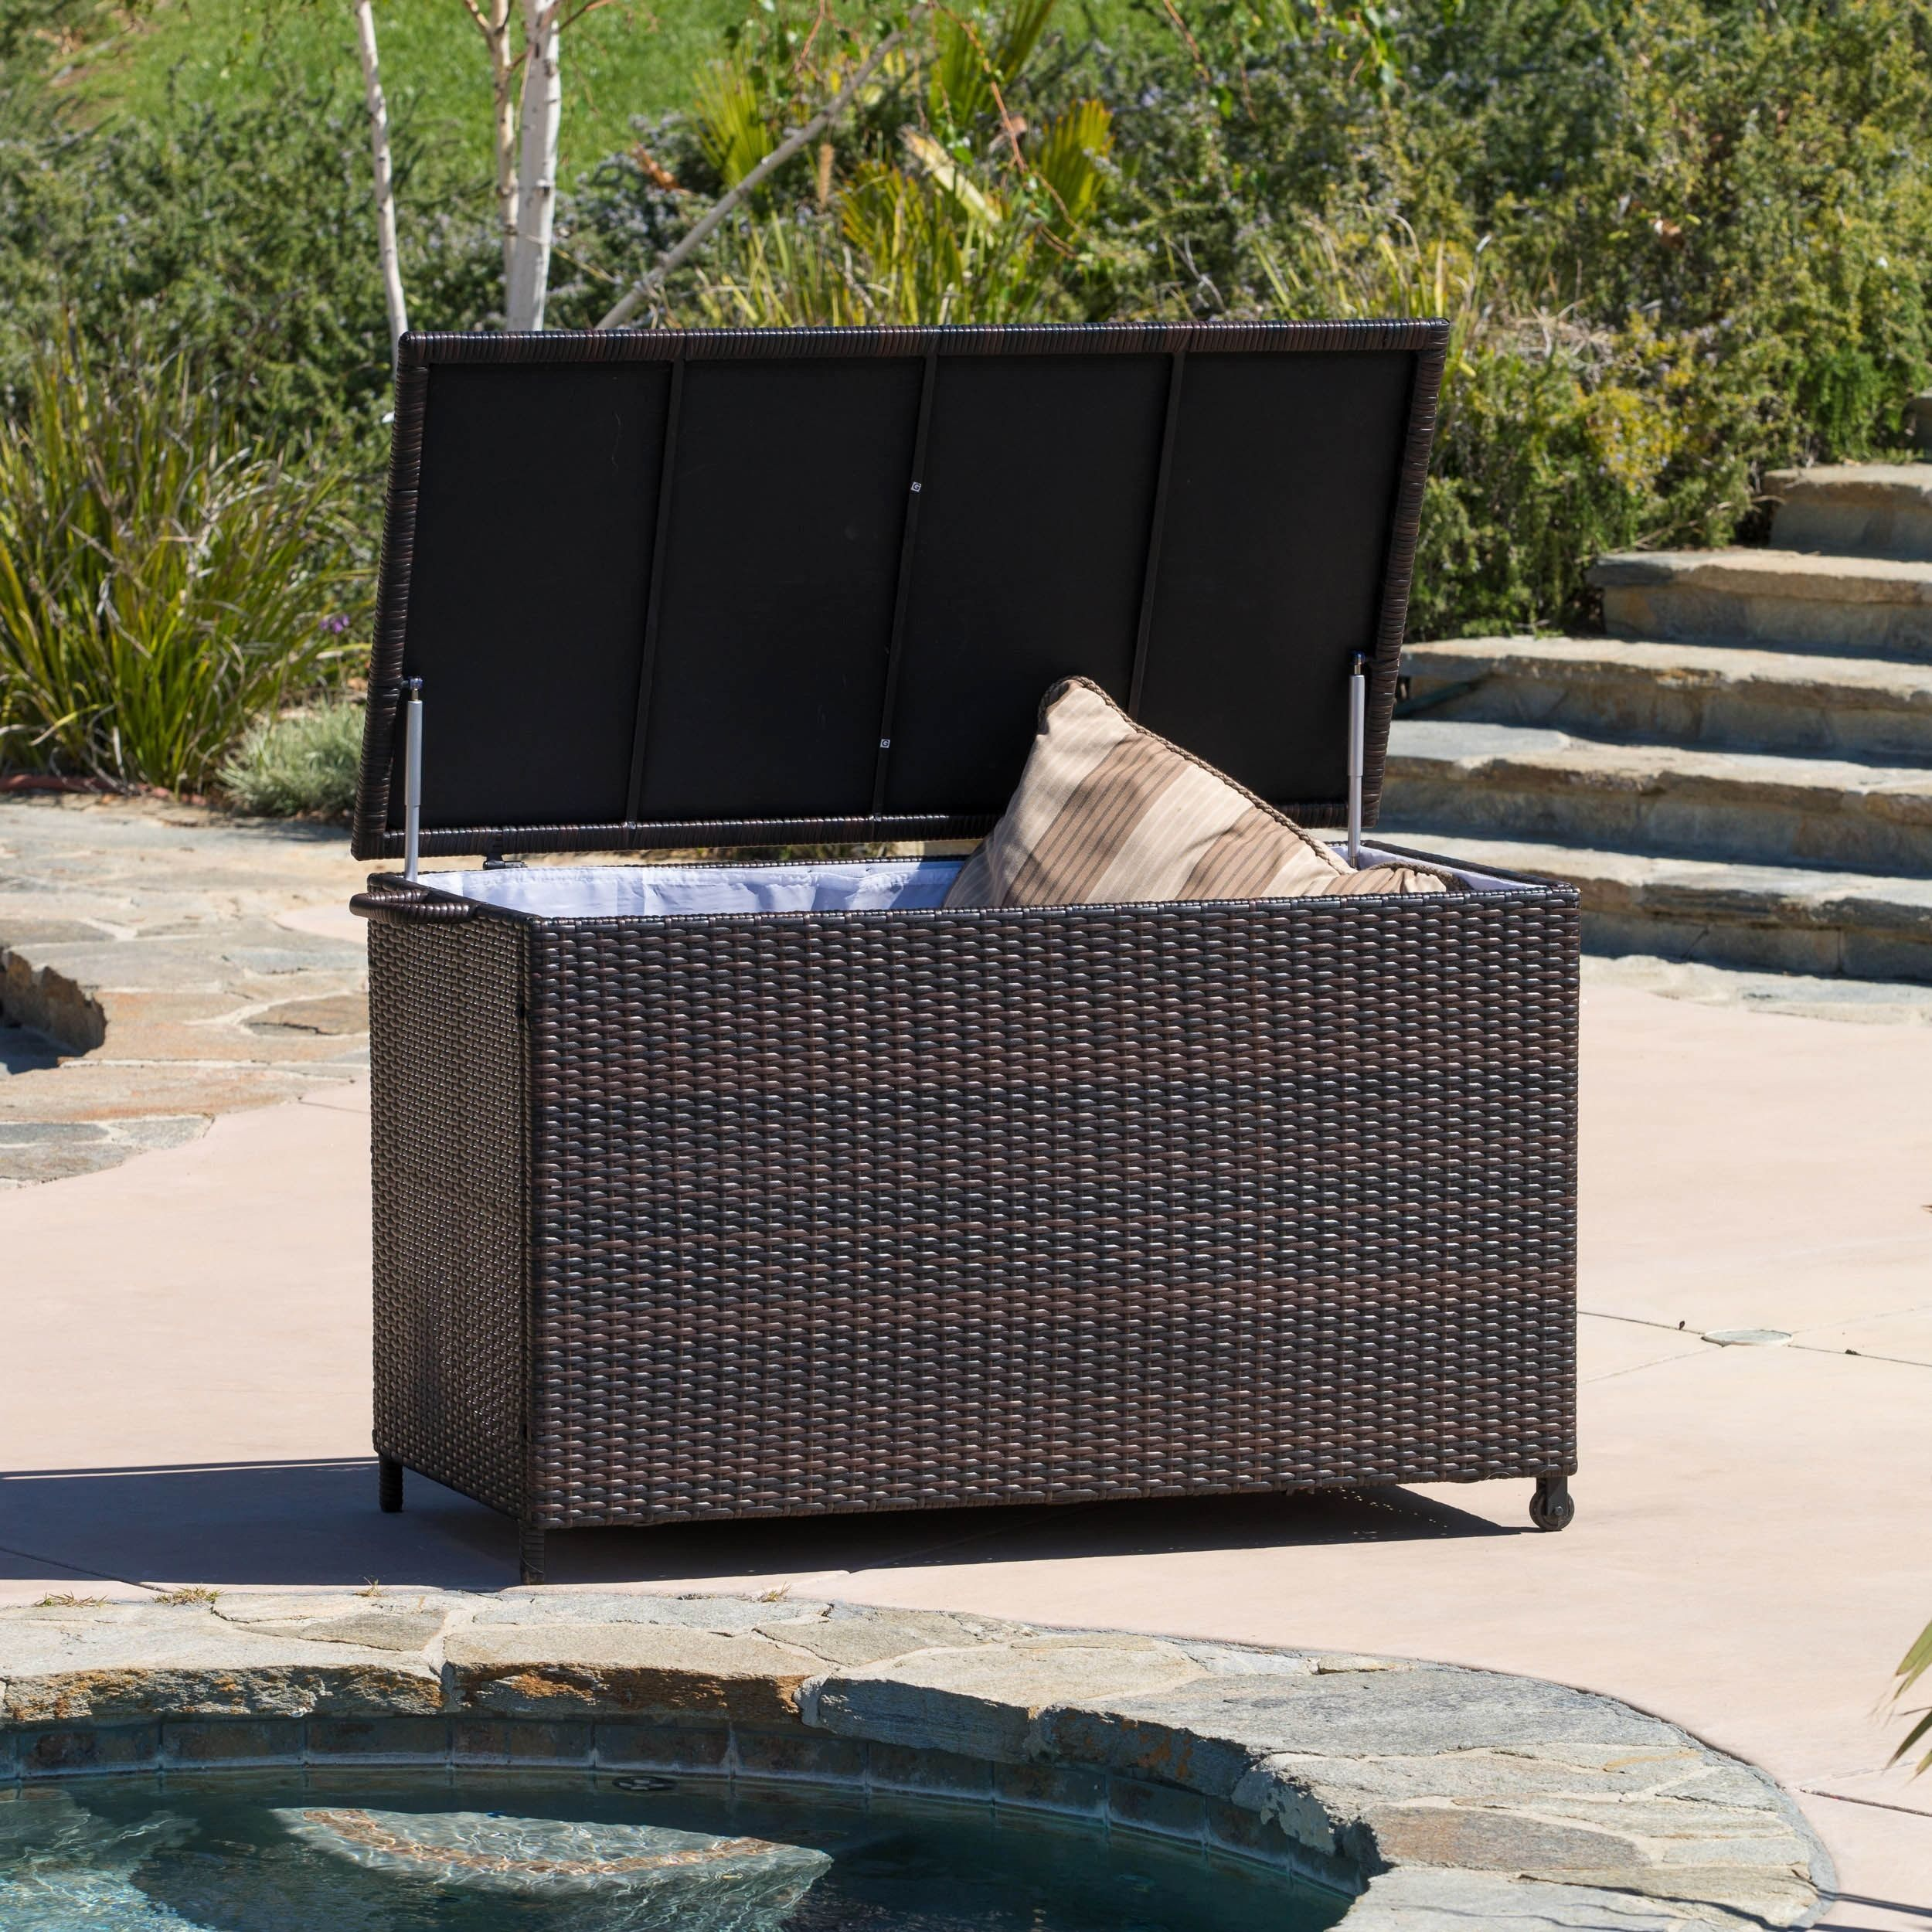 Store Your Patio Furniture Pillows, Pool Supplies, Or Gardening Tools In  This Handy Wicker Cushion Storage Cabinet. Featuring A Sturdy Aluminum  Frame, ...